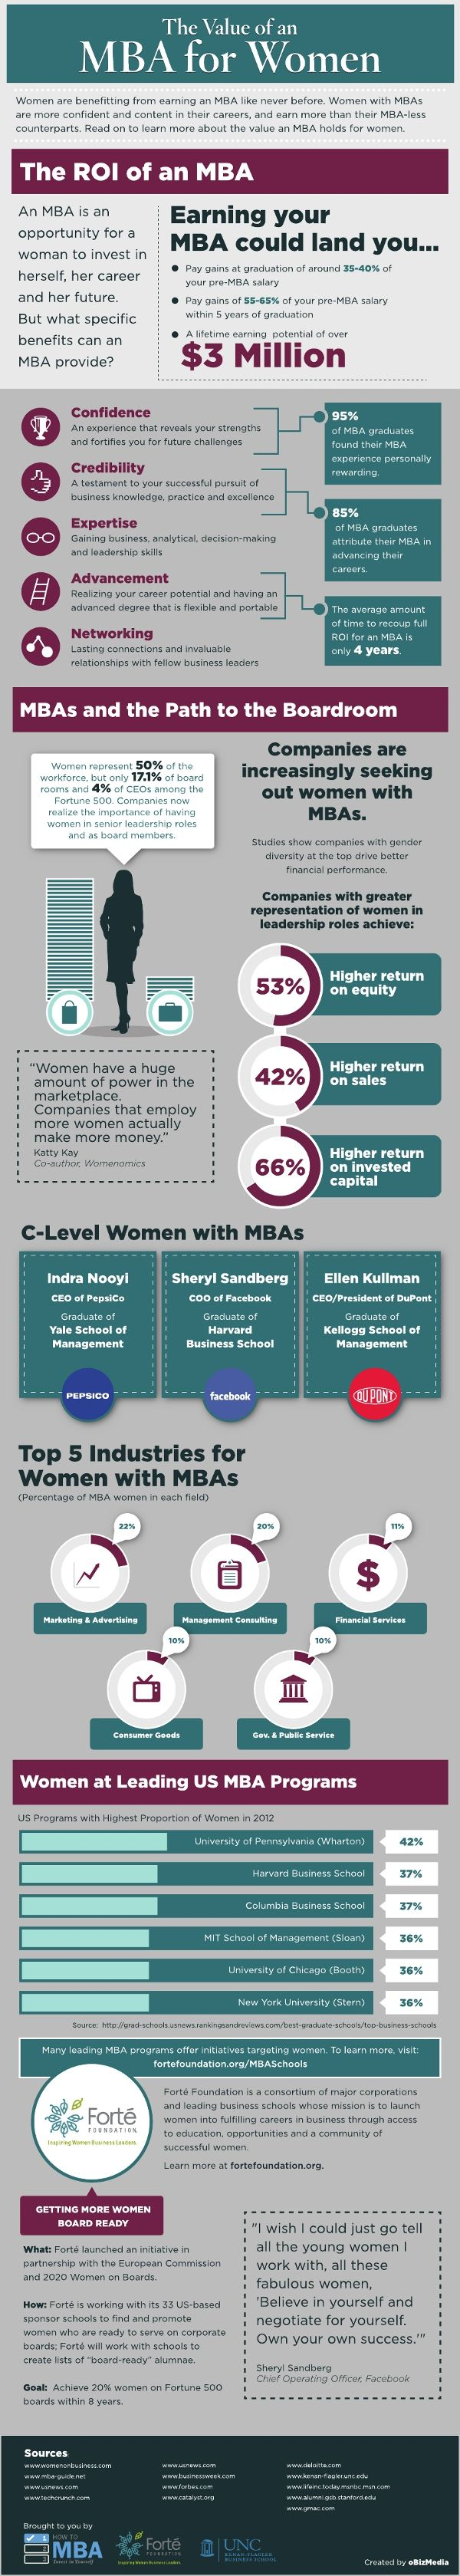 Value of an MBA for women